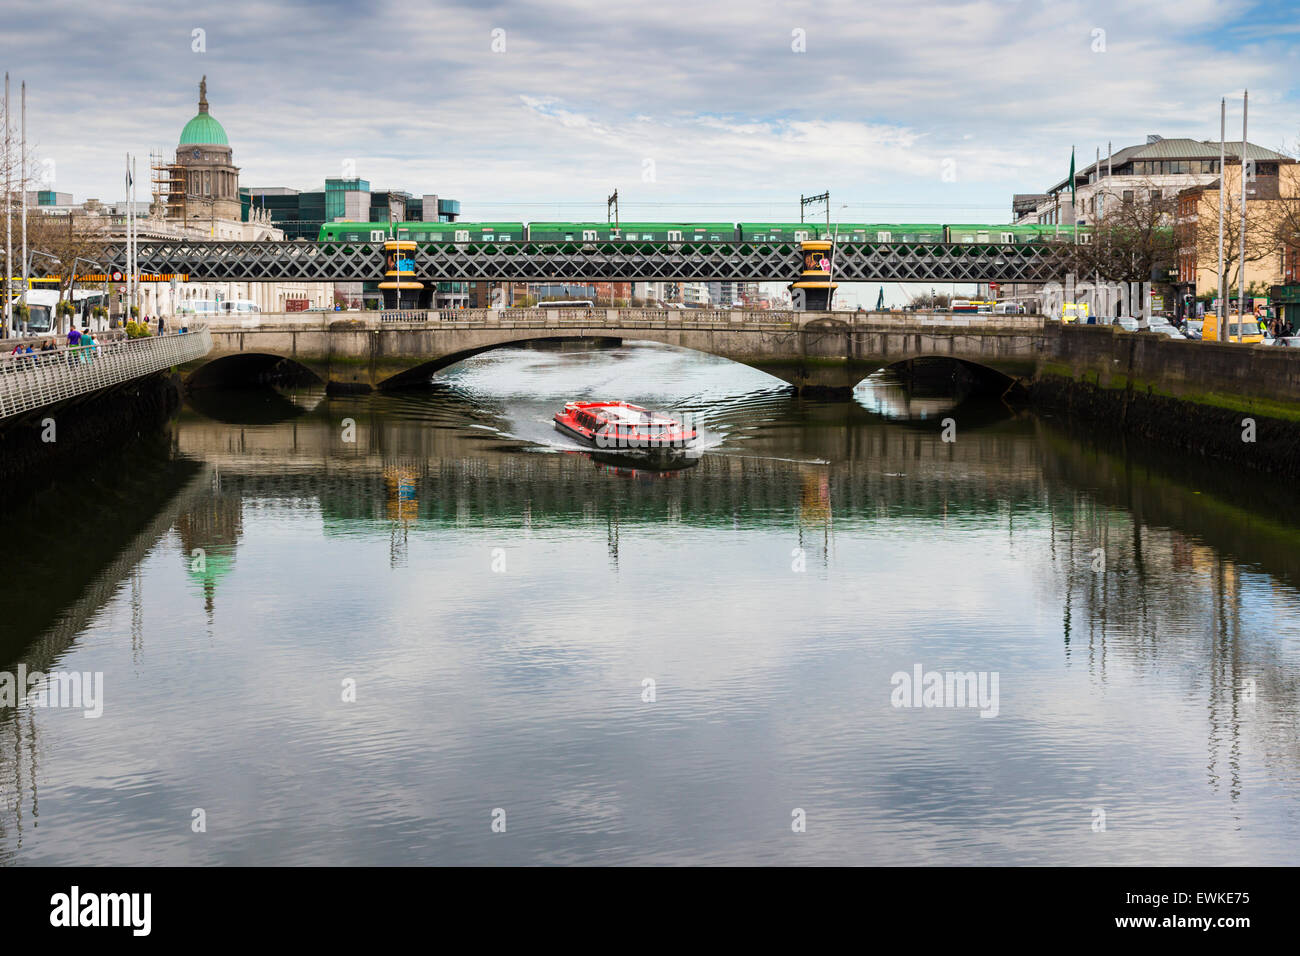 Dublin Tour Boat passes underneath the Rosi Hacket Bridge on the Liffey. - Stock Image